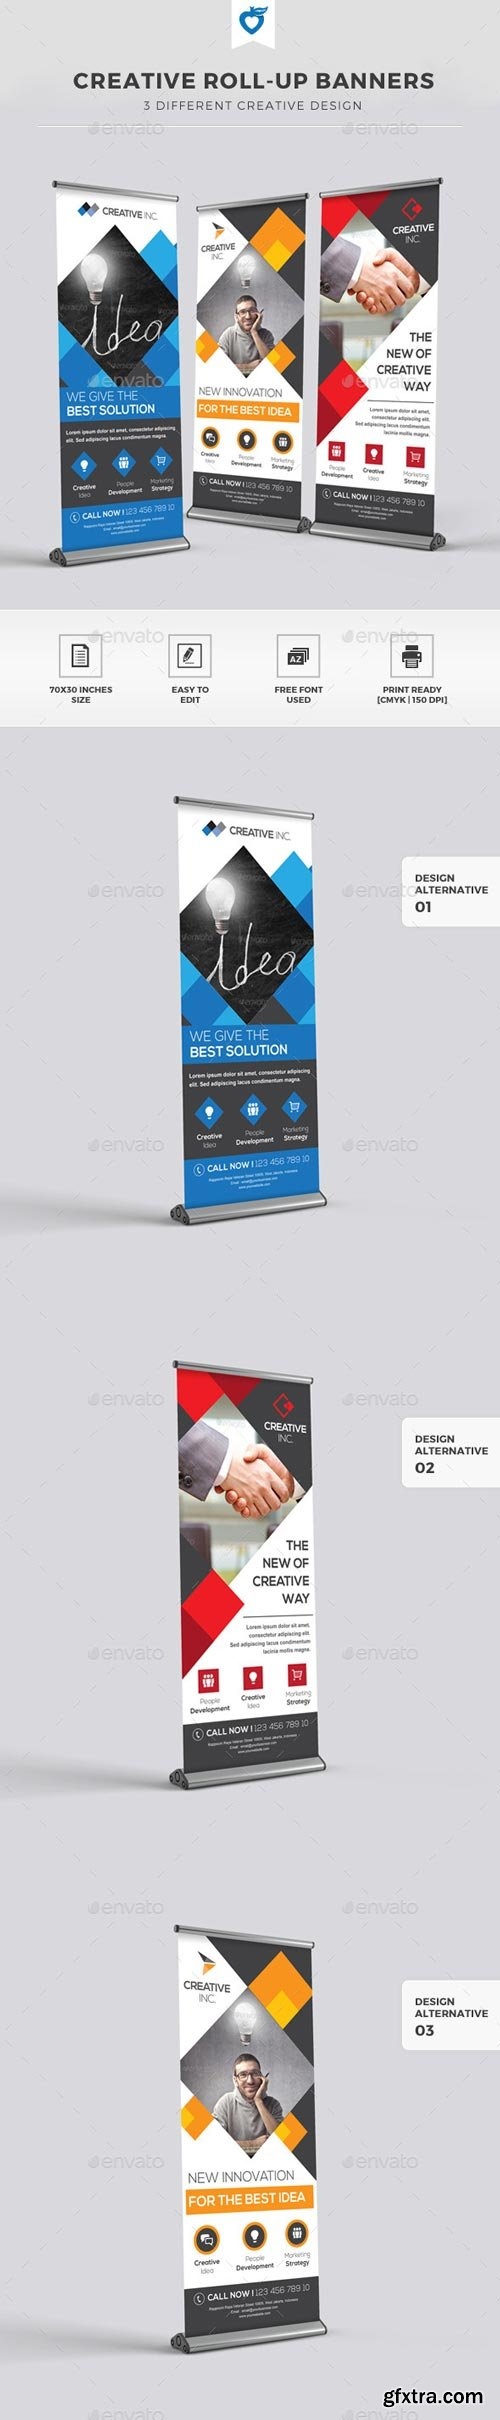 GraphicRiver - Creative Roll-up Banners - 11309735